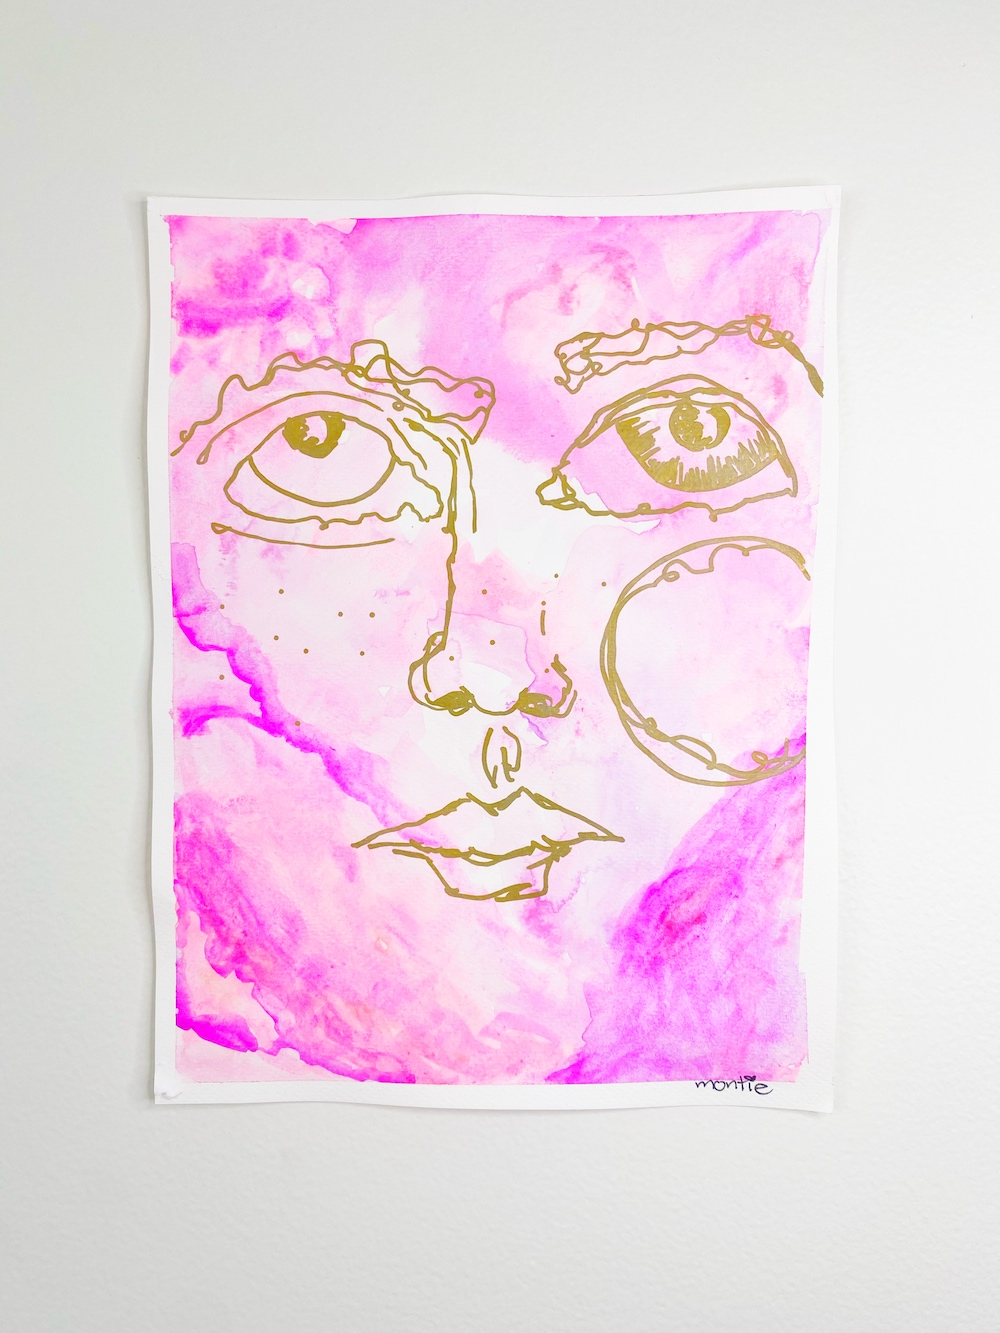 montie, Did I do that, watercolour and acrylic paint